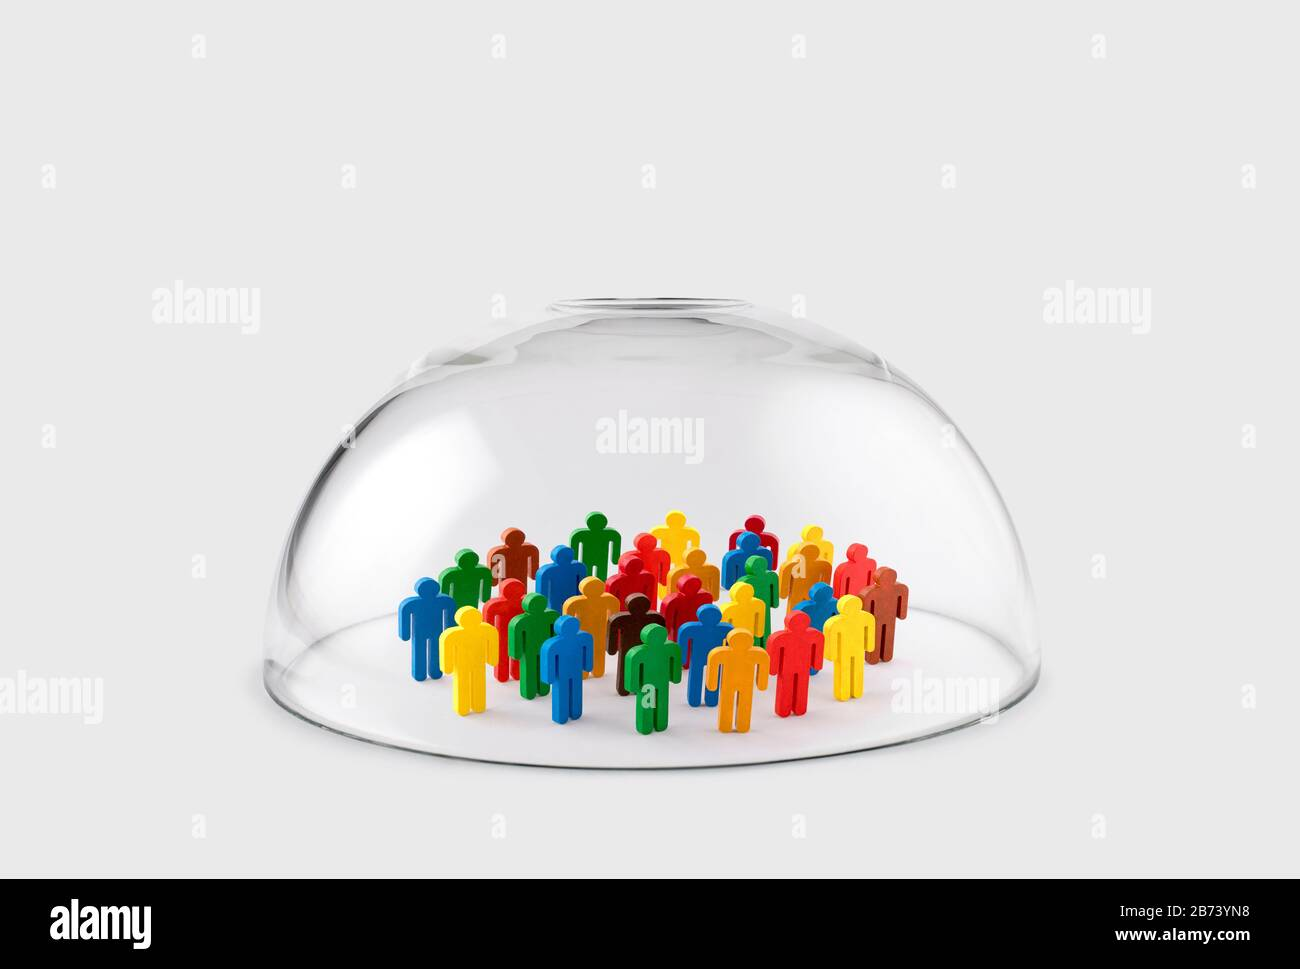 Colorful group of people figures protected under a glass dome Stock Photo